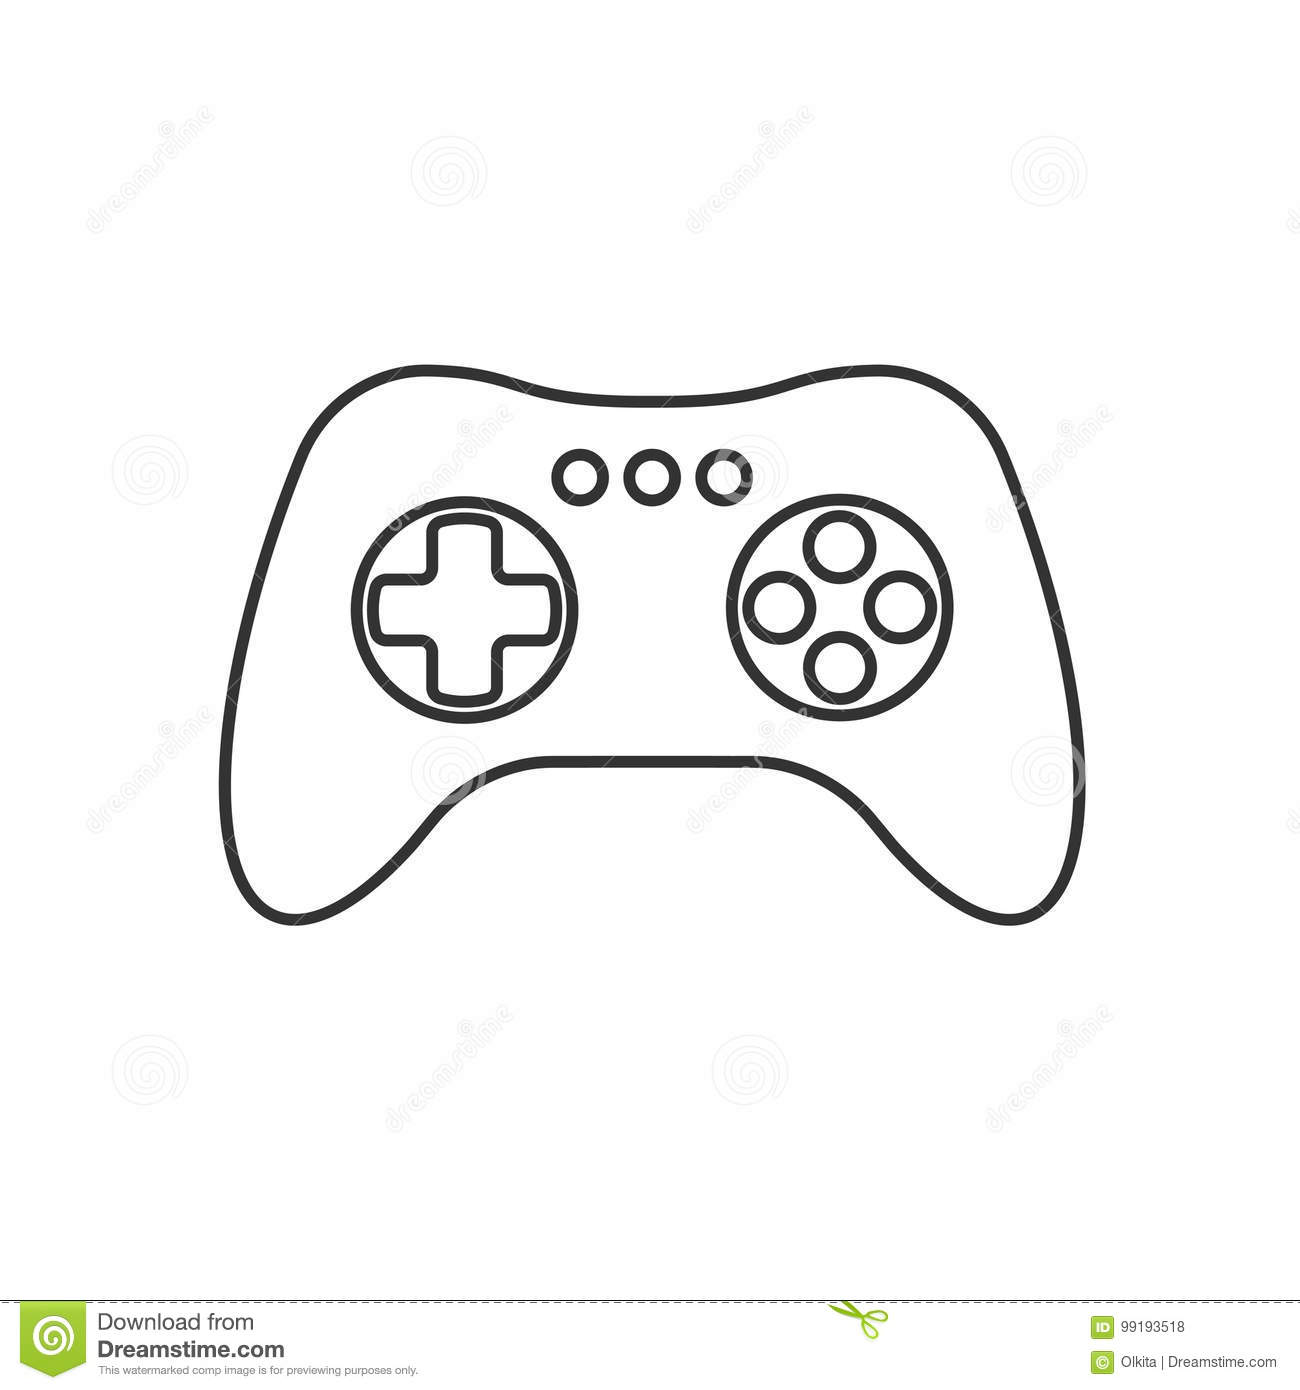 Isolated Black Outline Gamepad, Game Controller, Joystick